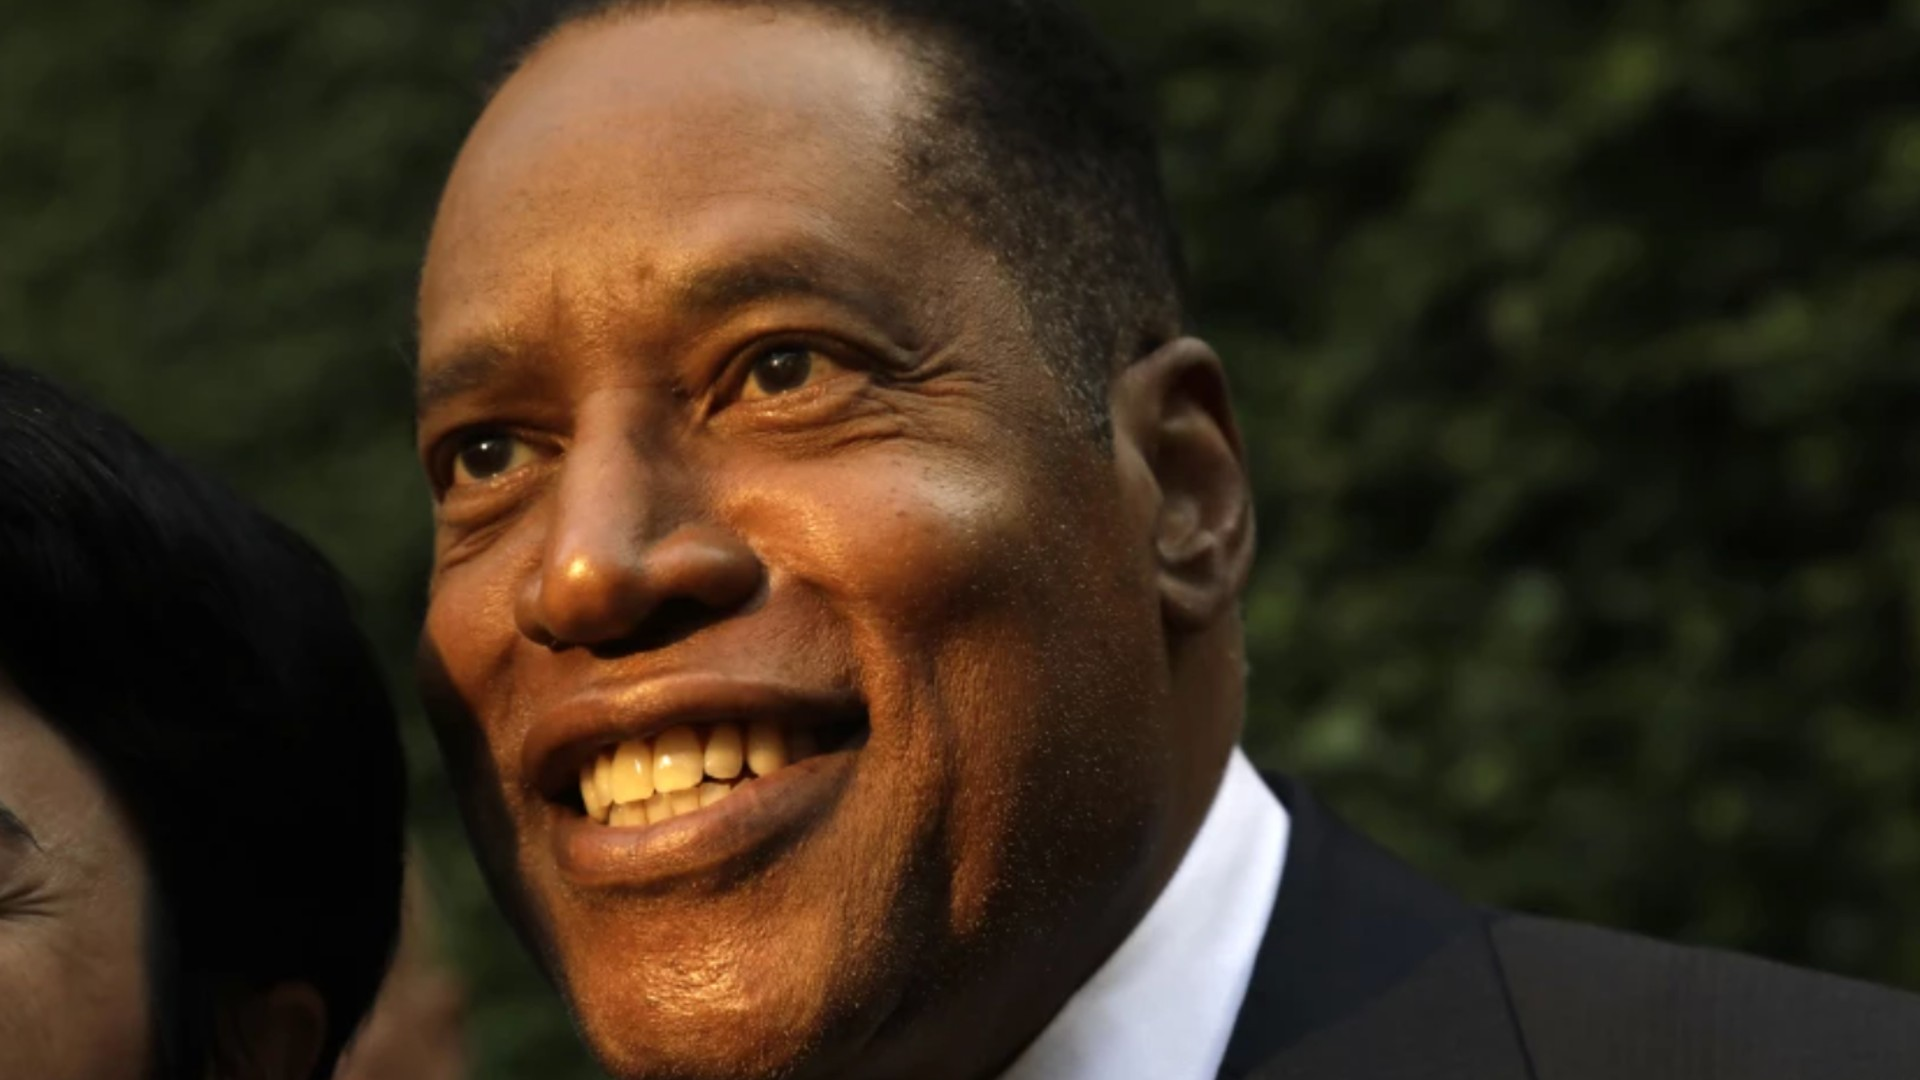 When asked to pick their first choice among the replacement candidates, 38% of likely voters preferred radio talk show host Larry Elder — up from 18% in July, a UC Berkeley Institute of Governmental Studies poll shows.(Genaro Molina / Los Angeles Times)